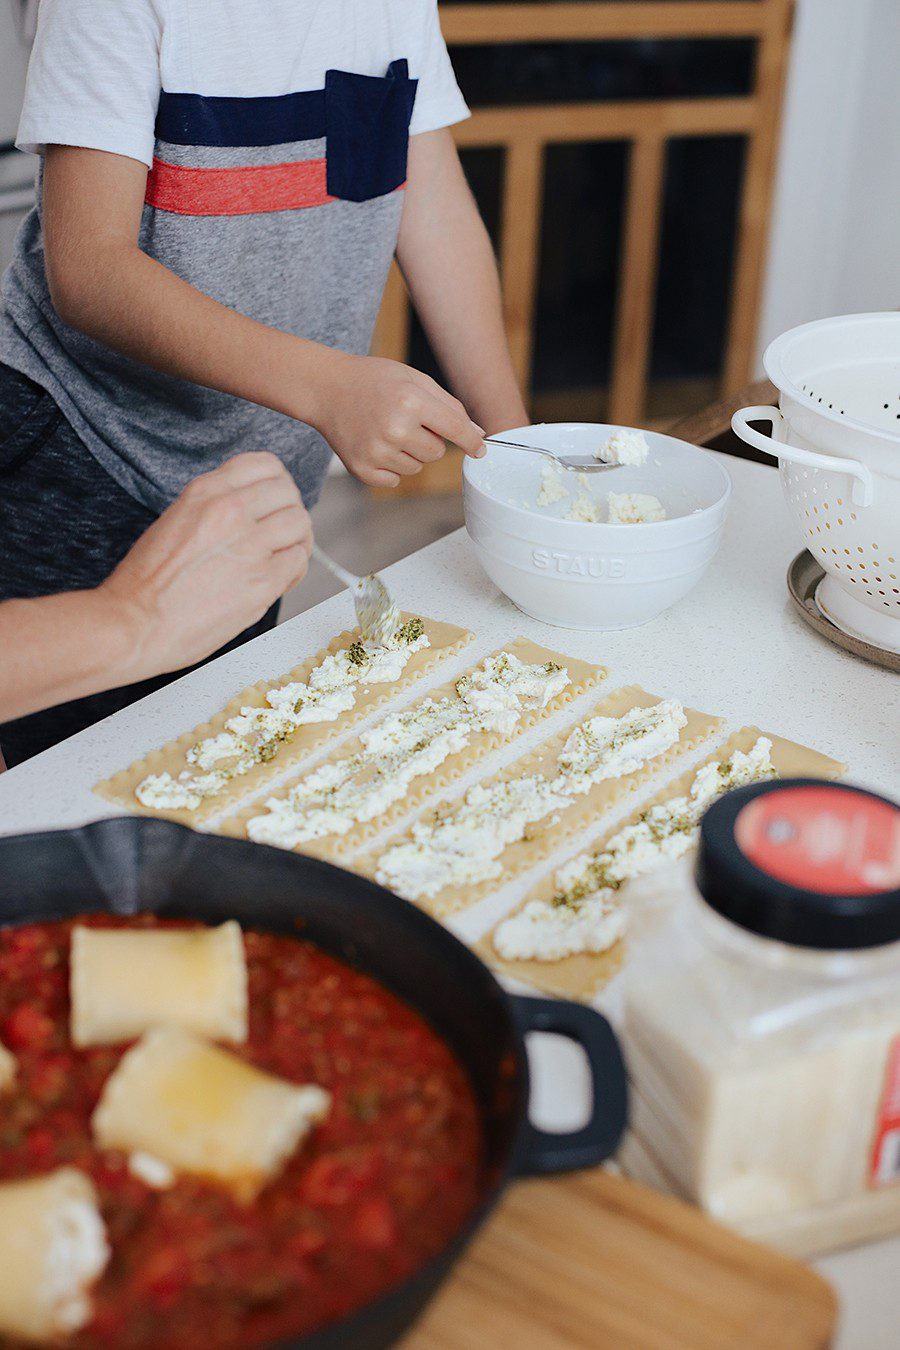 mom and son cooking lasagna together | Cast Iron Lasagna by popular Florida lifestyle blog, Fresh Mommy Blog: image of a mom and her son putting ricotta cheese on lasagna noodles.